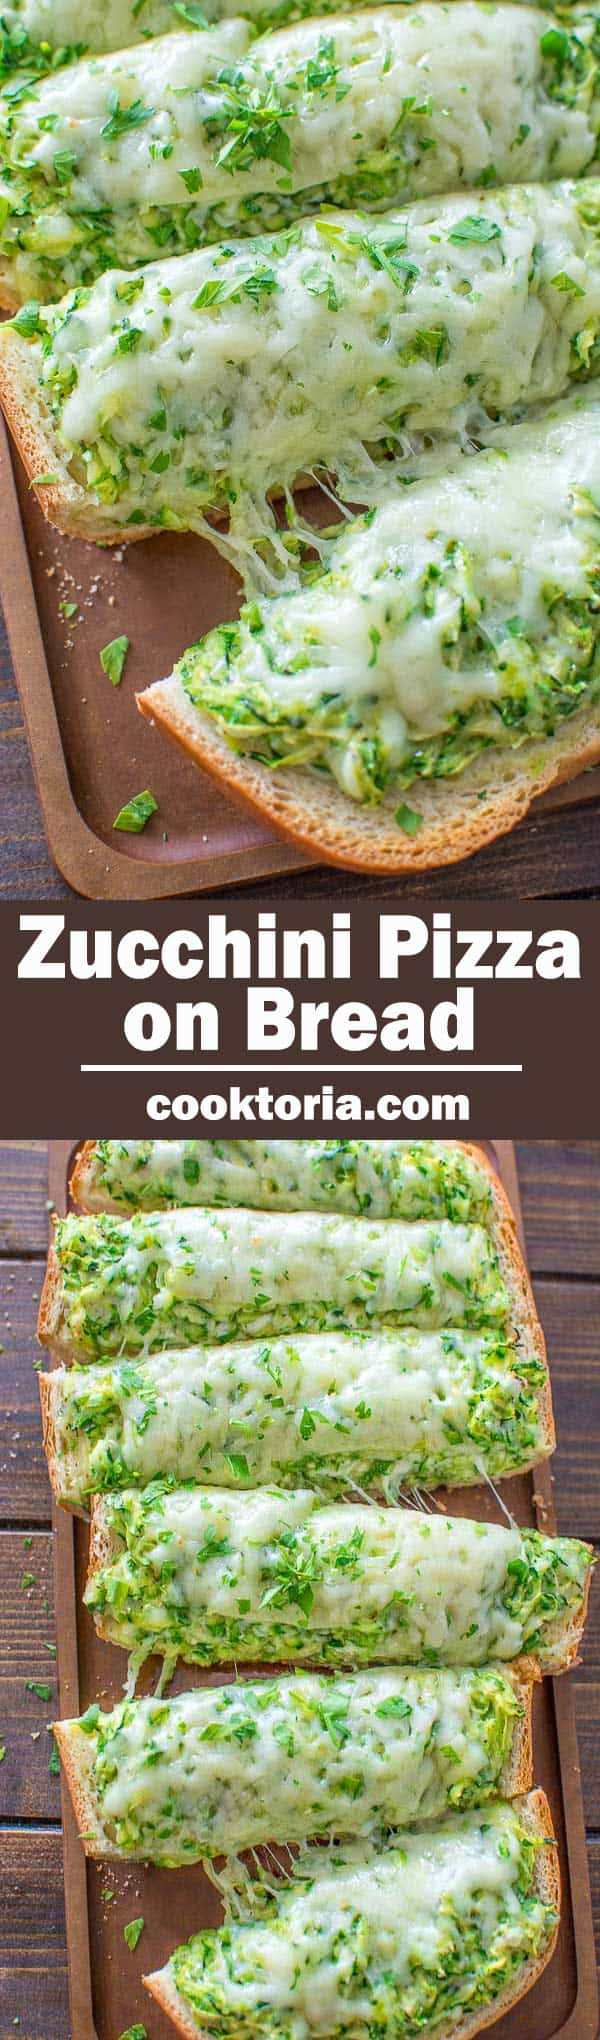 This Zucchini Pizza on Bread is unbelievably simple and very tasty! It takes only 30 minutes to make! ❤ COOKTORIA.COM